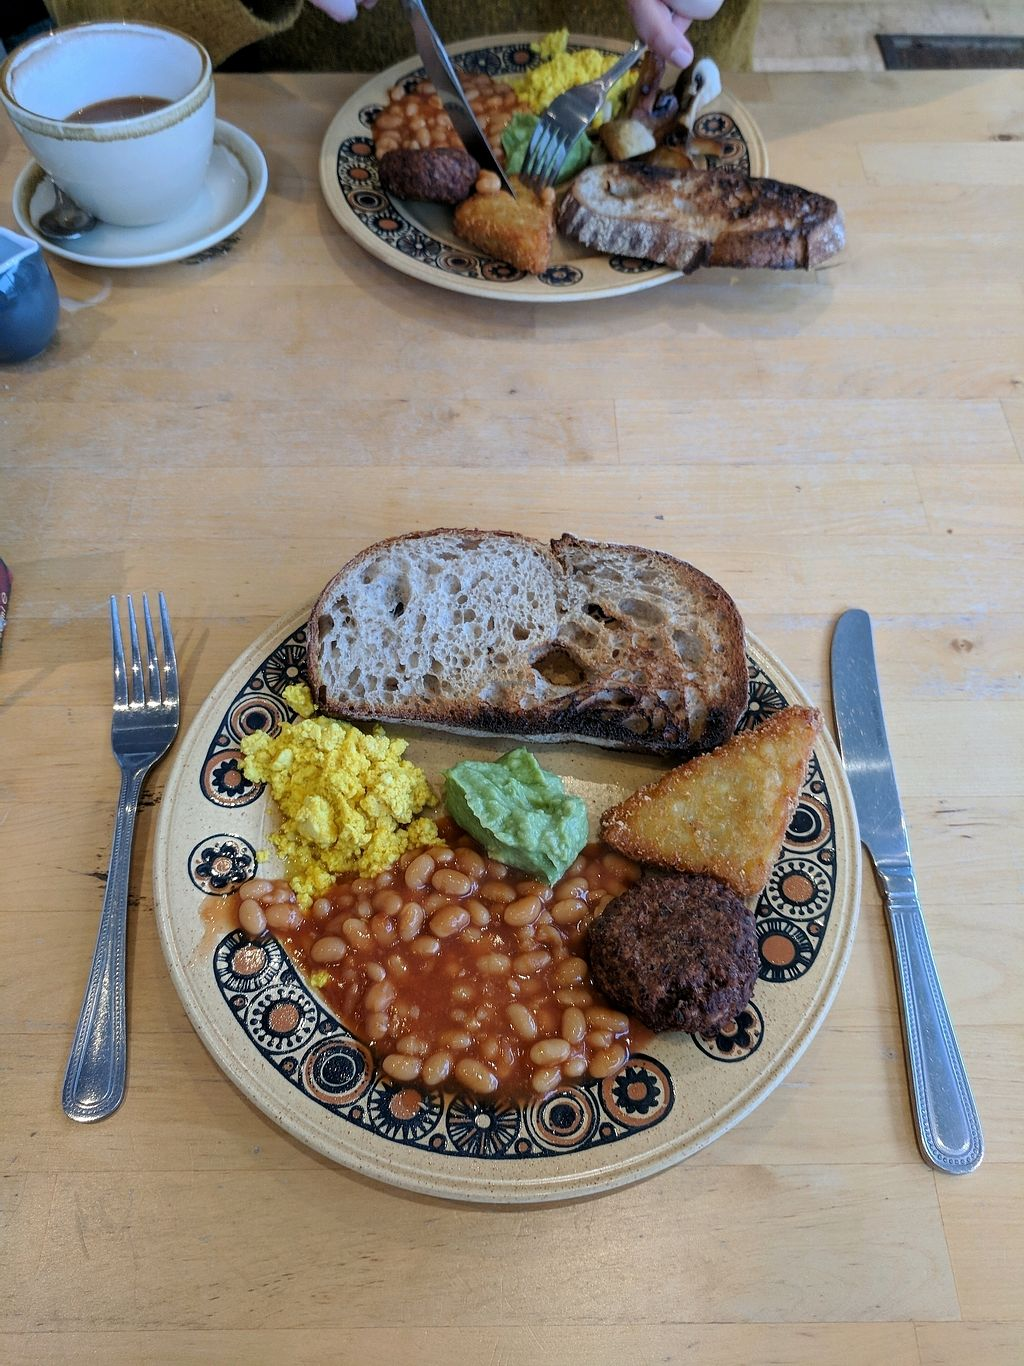 "Photo of DANA  by <a href=""/members/profile/kvalentine"">kvalentine</a> <br/>Vegan half breakfast with scrambled tofu, and mushrooms replaced with avacado upon request <br/> March 11, 2018  - <a href='/contact/abuse/image/92995/369204'>Report</a>"